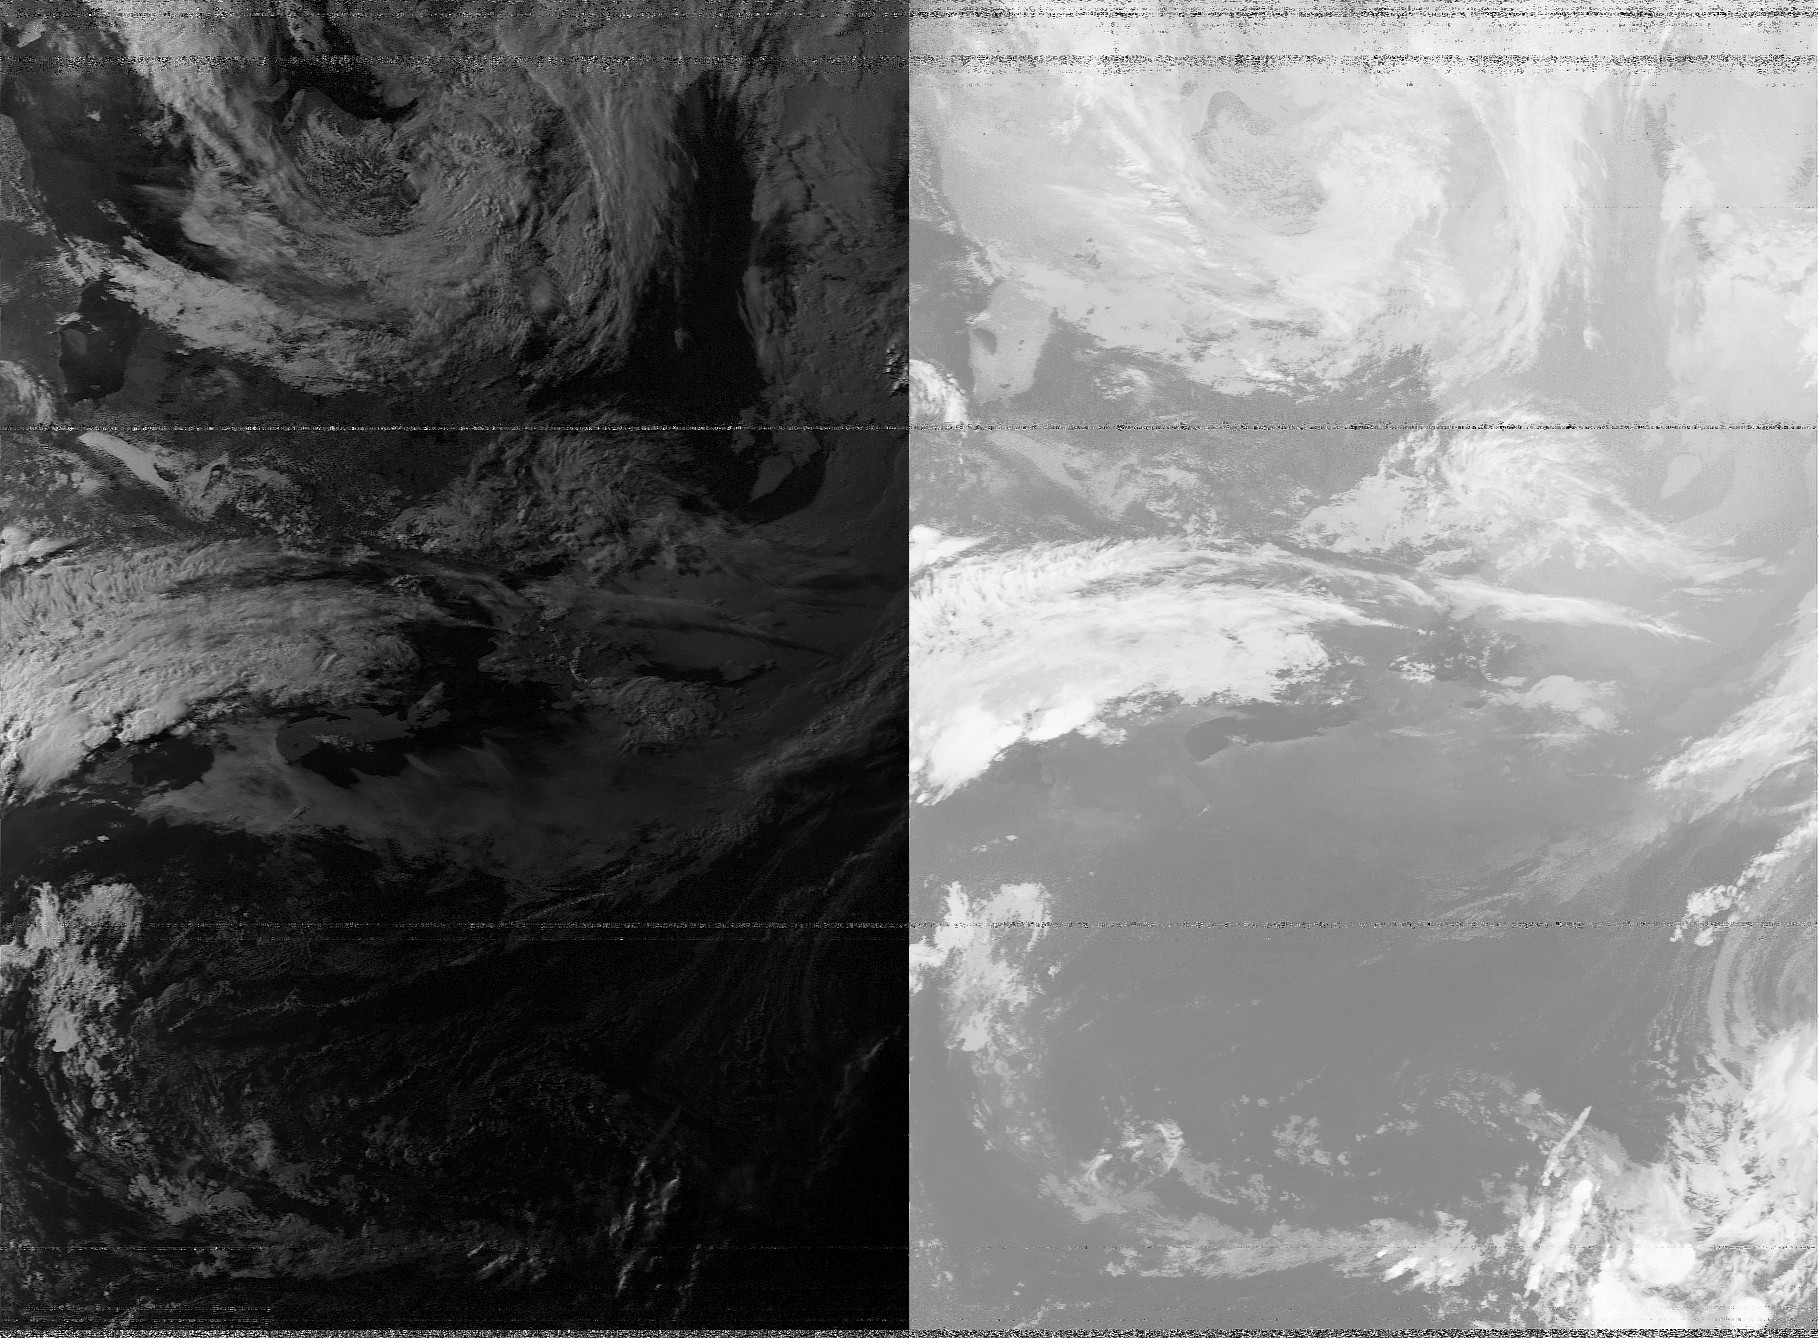 NOAA 15 pass over PEI